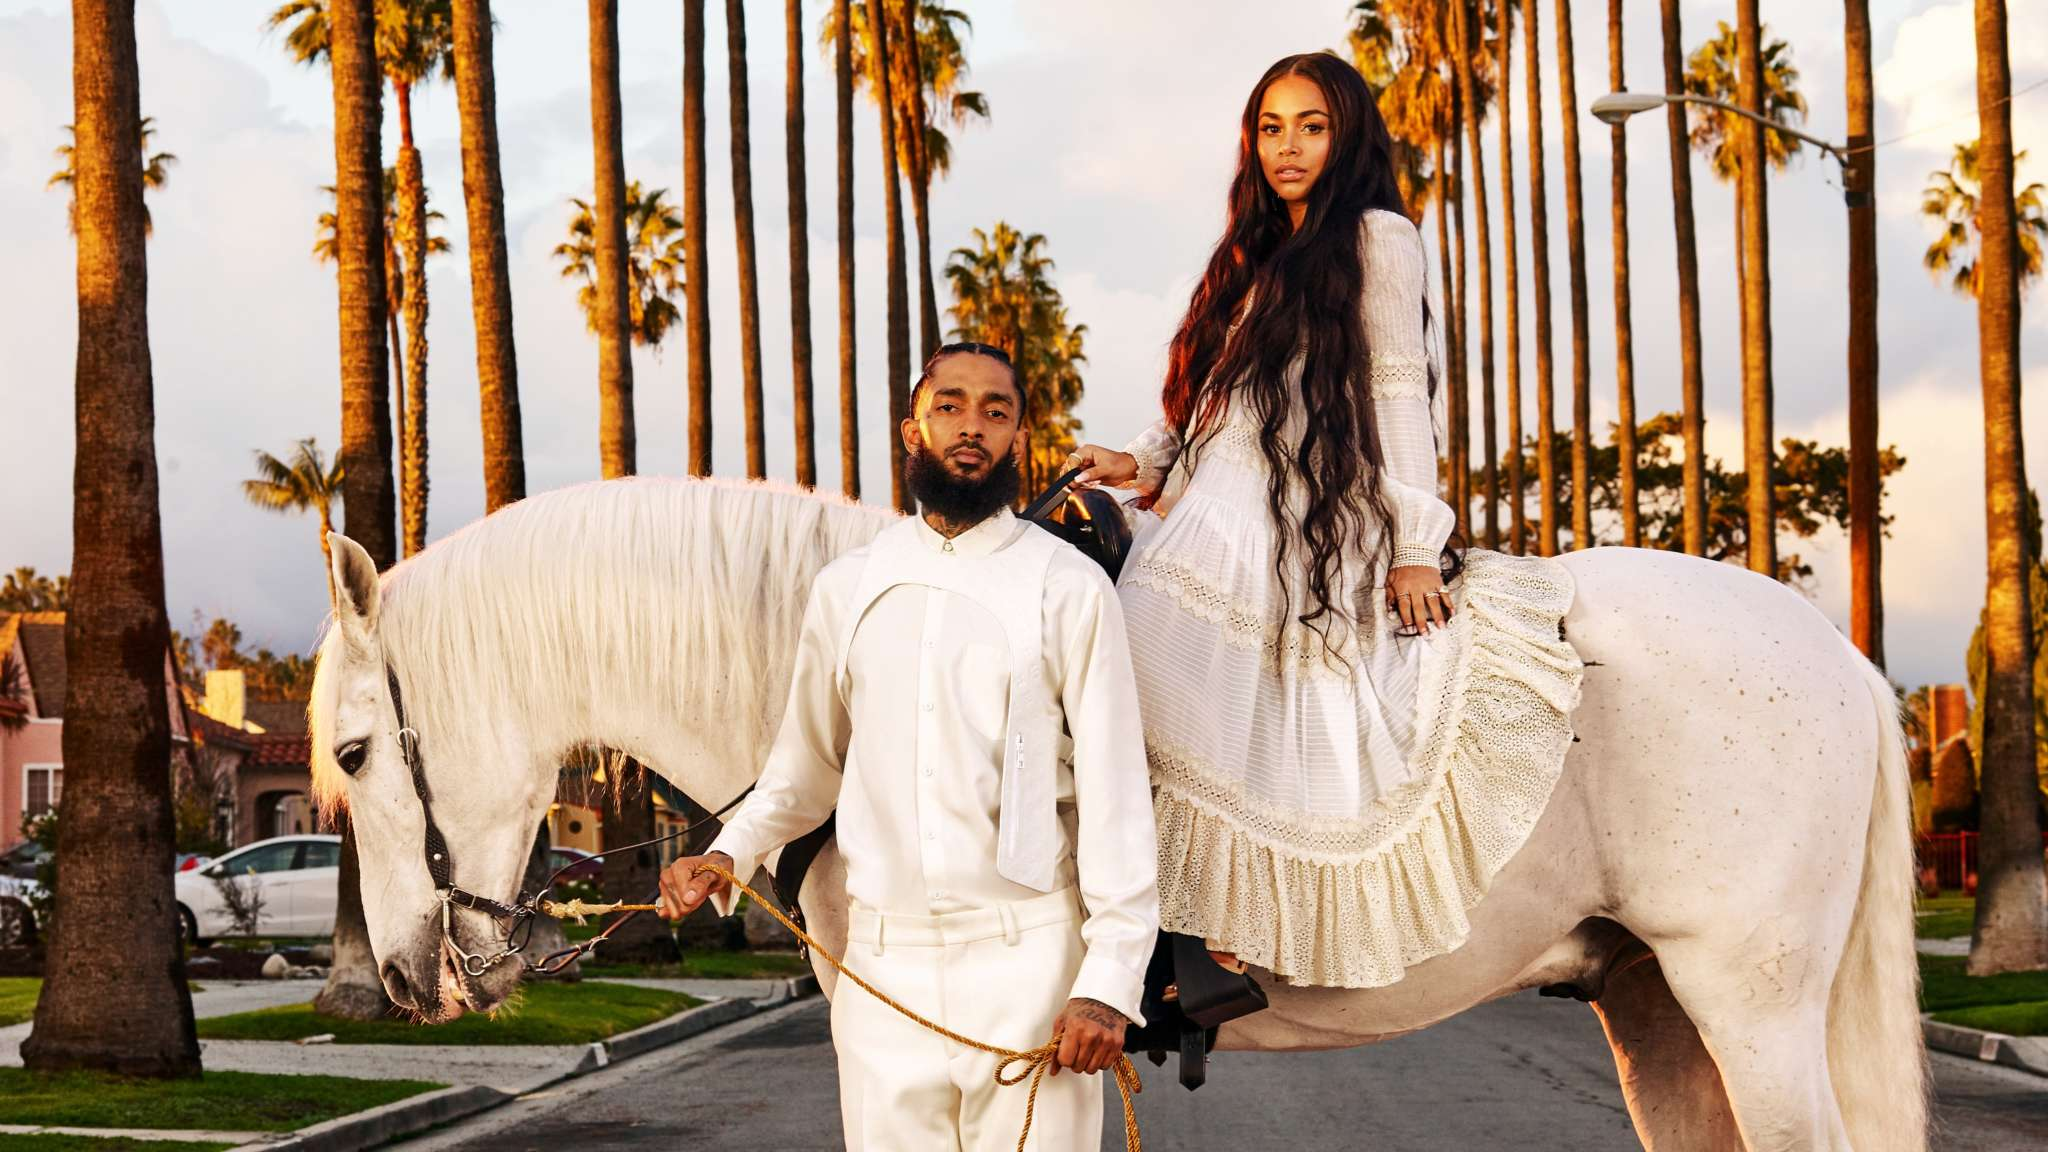 """lauren-london-pays-heartbreaking-tribute-to-nipsey-hussle-on-what-would-have-been-his-35th-birthday"""